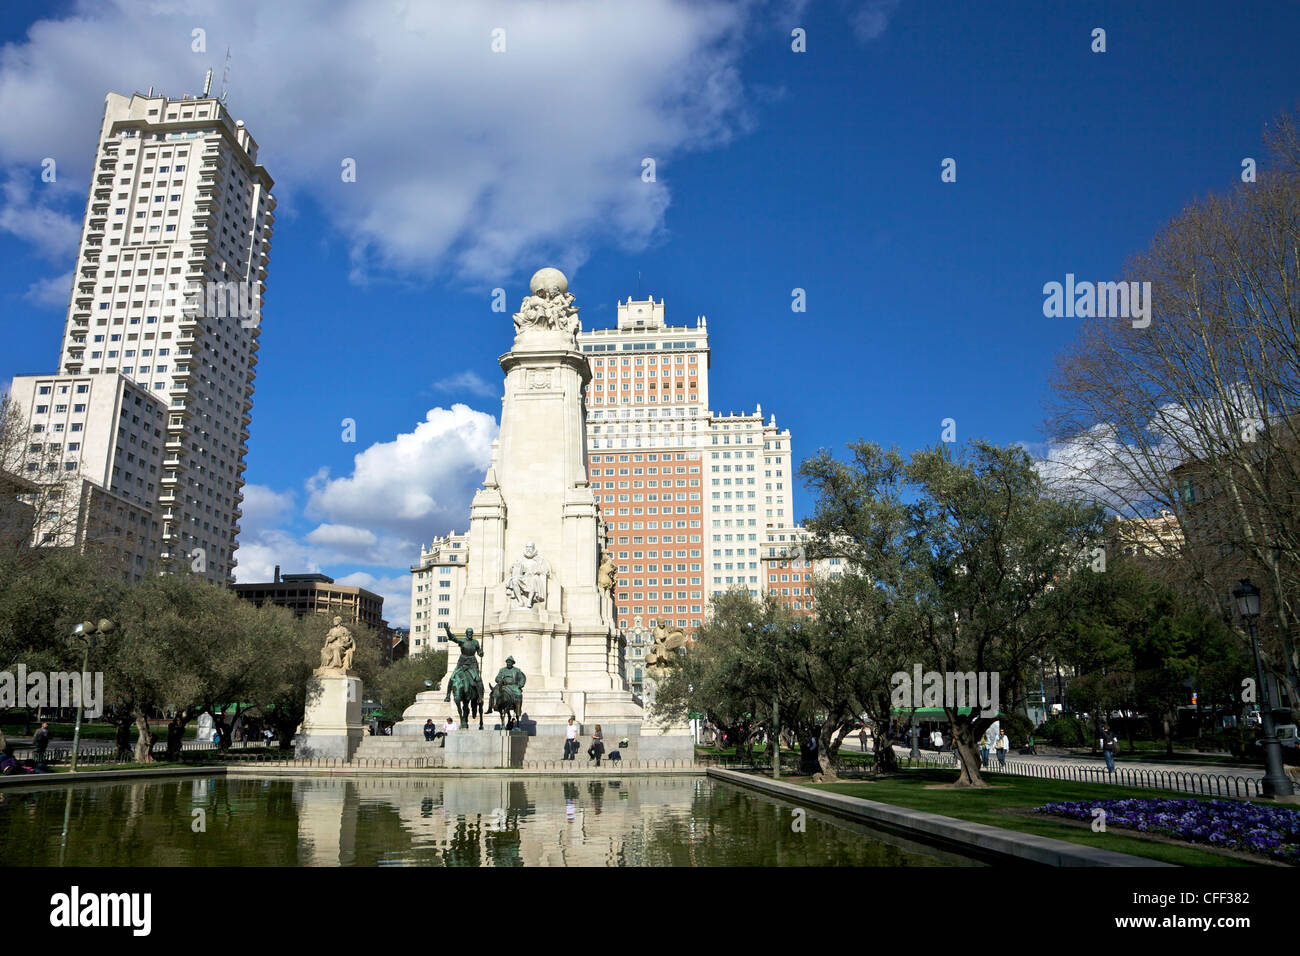 Spring sunshine on the Plaza de Espana, with statues of Don Quixote and Sancho Panza, Madrid, Spain, Europe - Stock Image